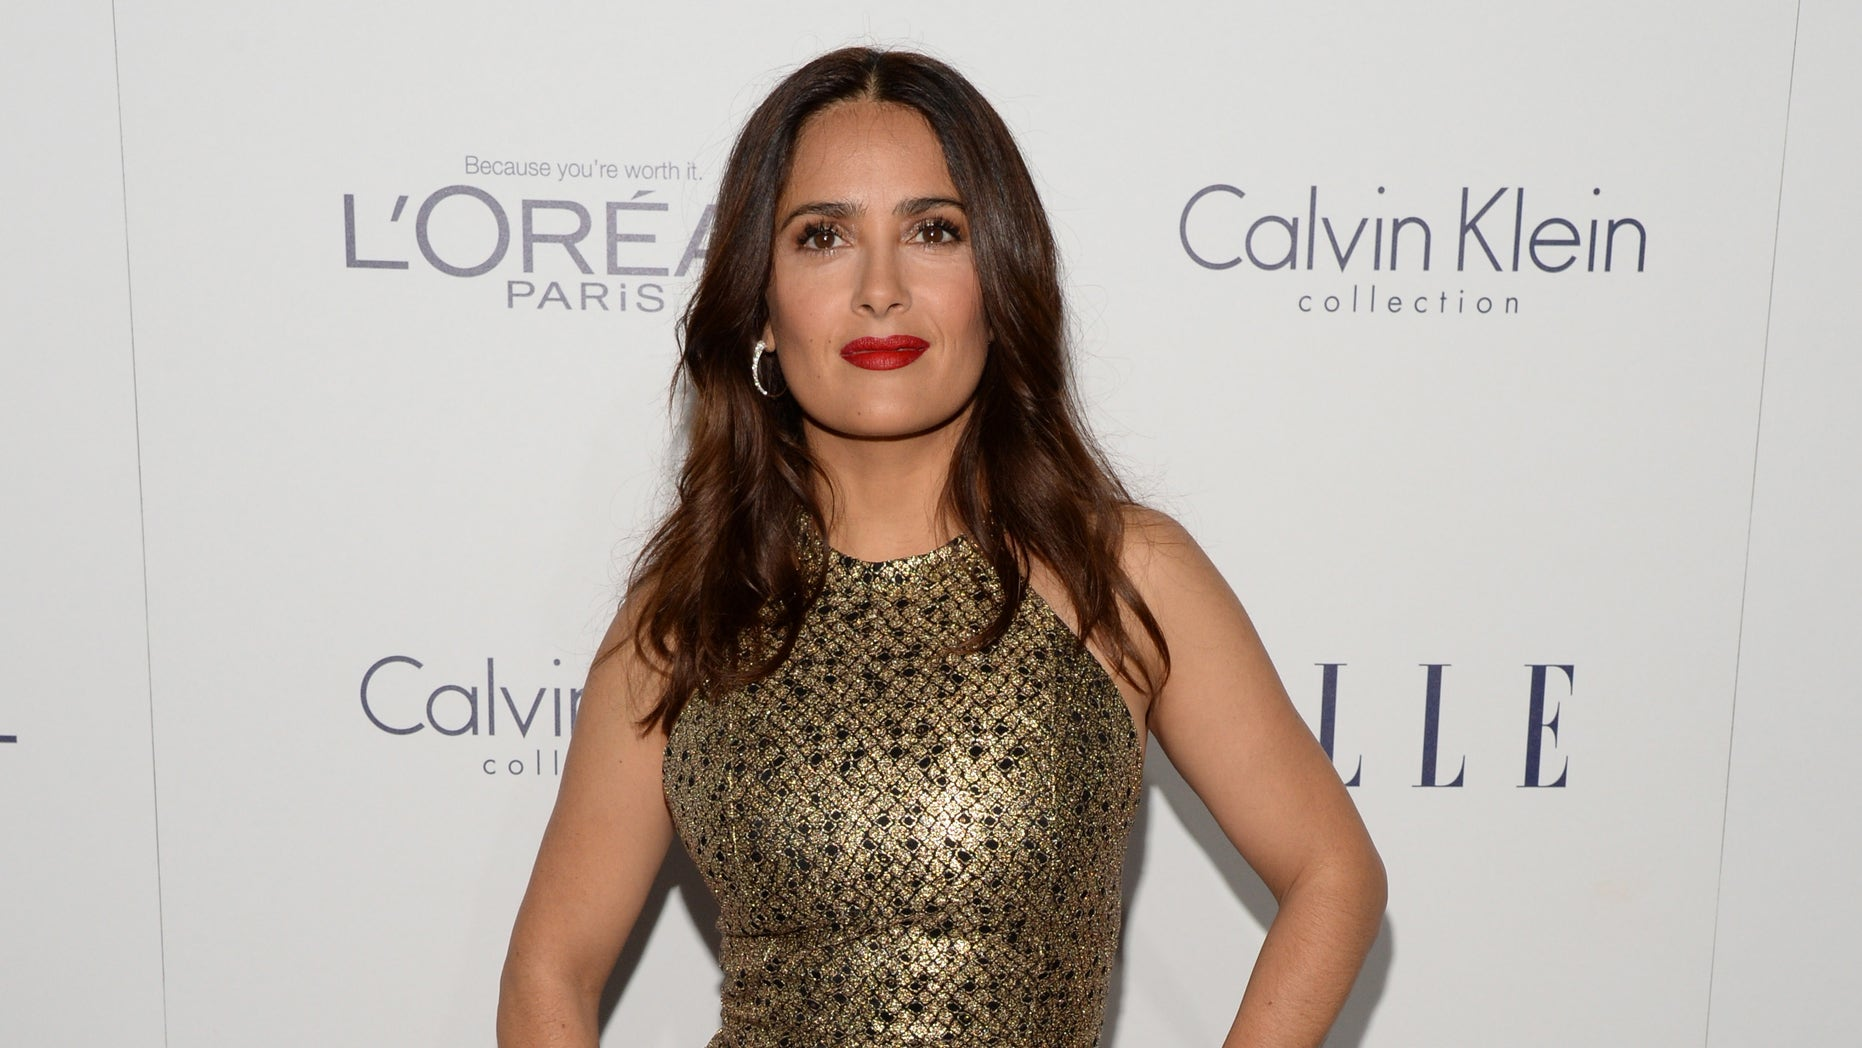 LOS ANGELES, CA - OCTOBER 19:  Actress Salma Hayek attends the 22nd Annual ELLE Women in Hollywood Awards at Four Seasons Hotel Los Angeles at Beverly Hills on October 19, 2015 in Los Angeles, California.  (Photo by Michael Kovac/Getty Images for ELLE)